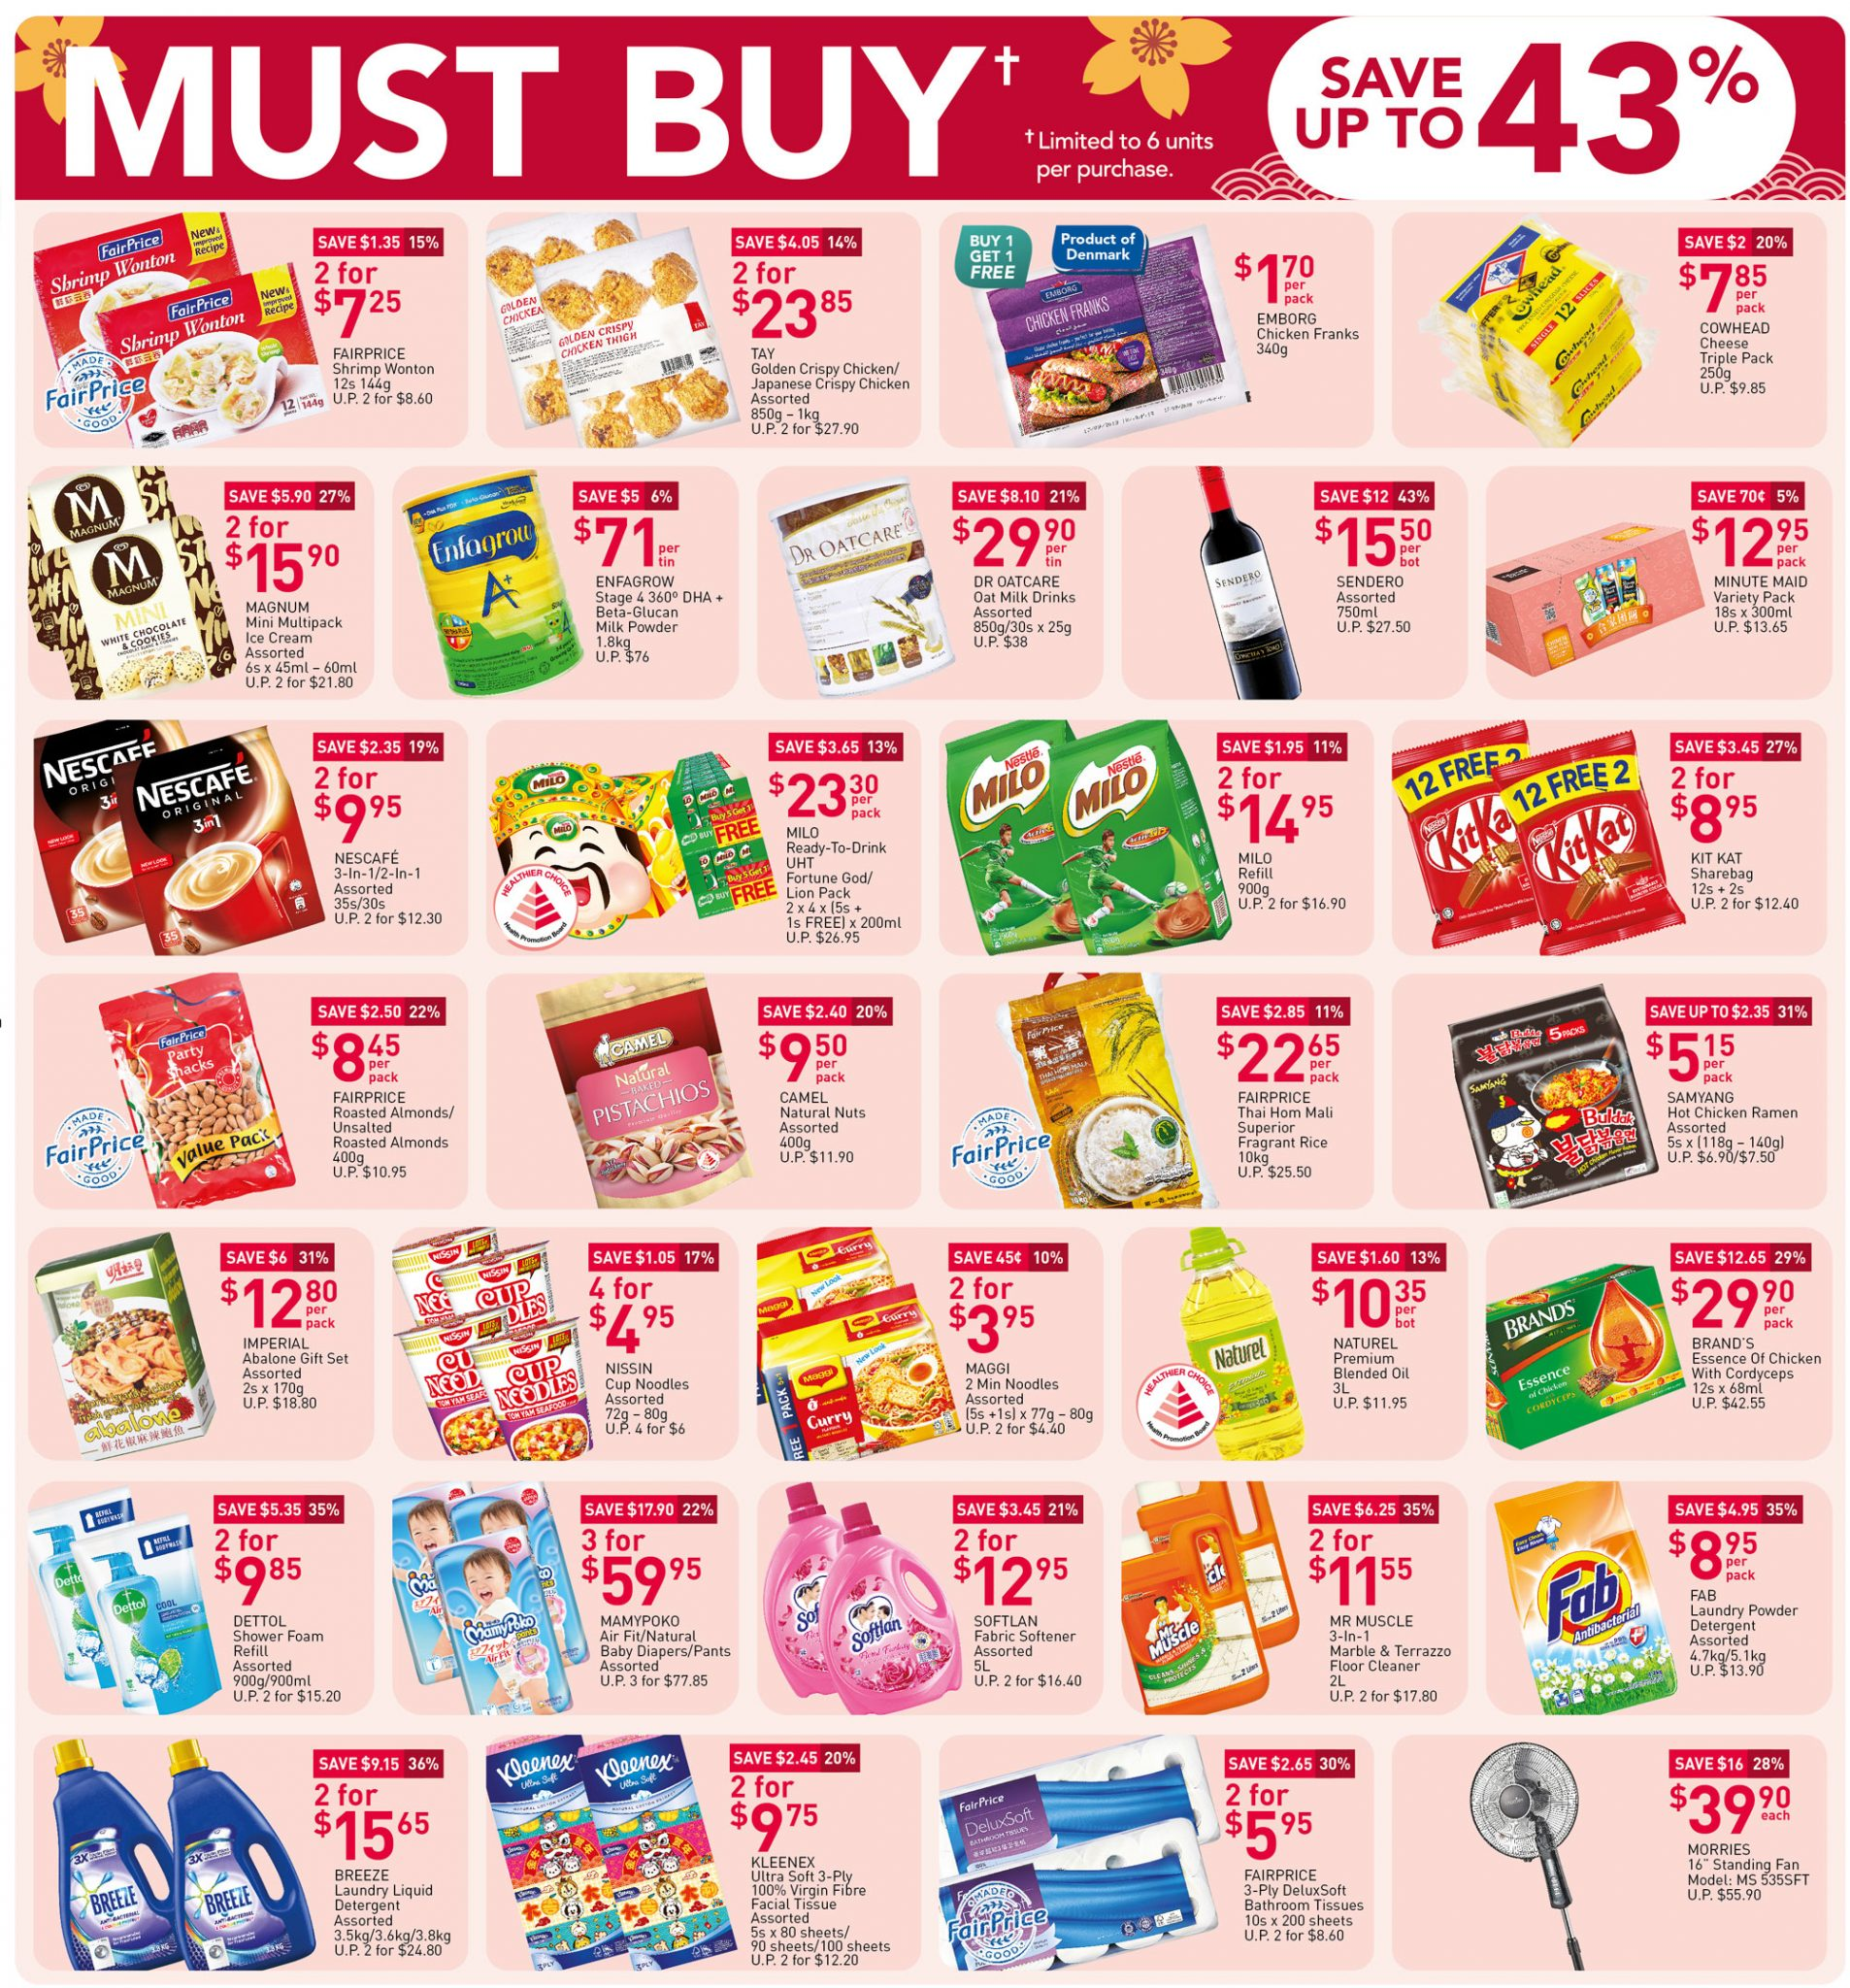 Must-buy items from now till 10 February 2021